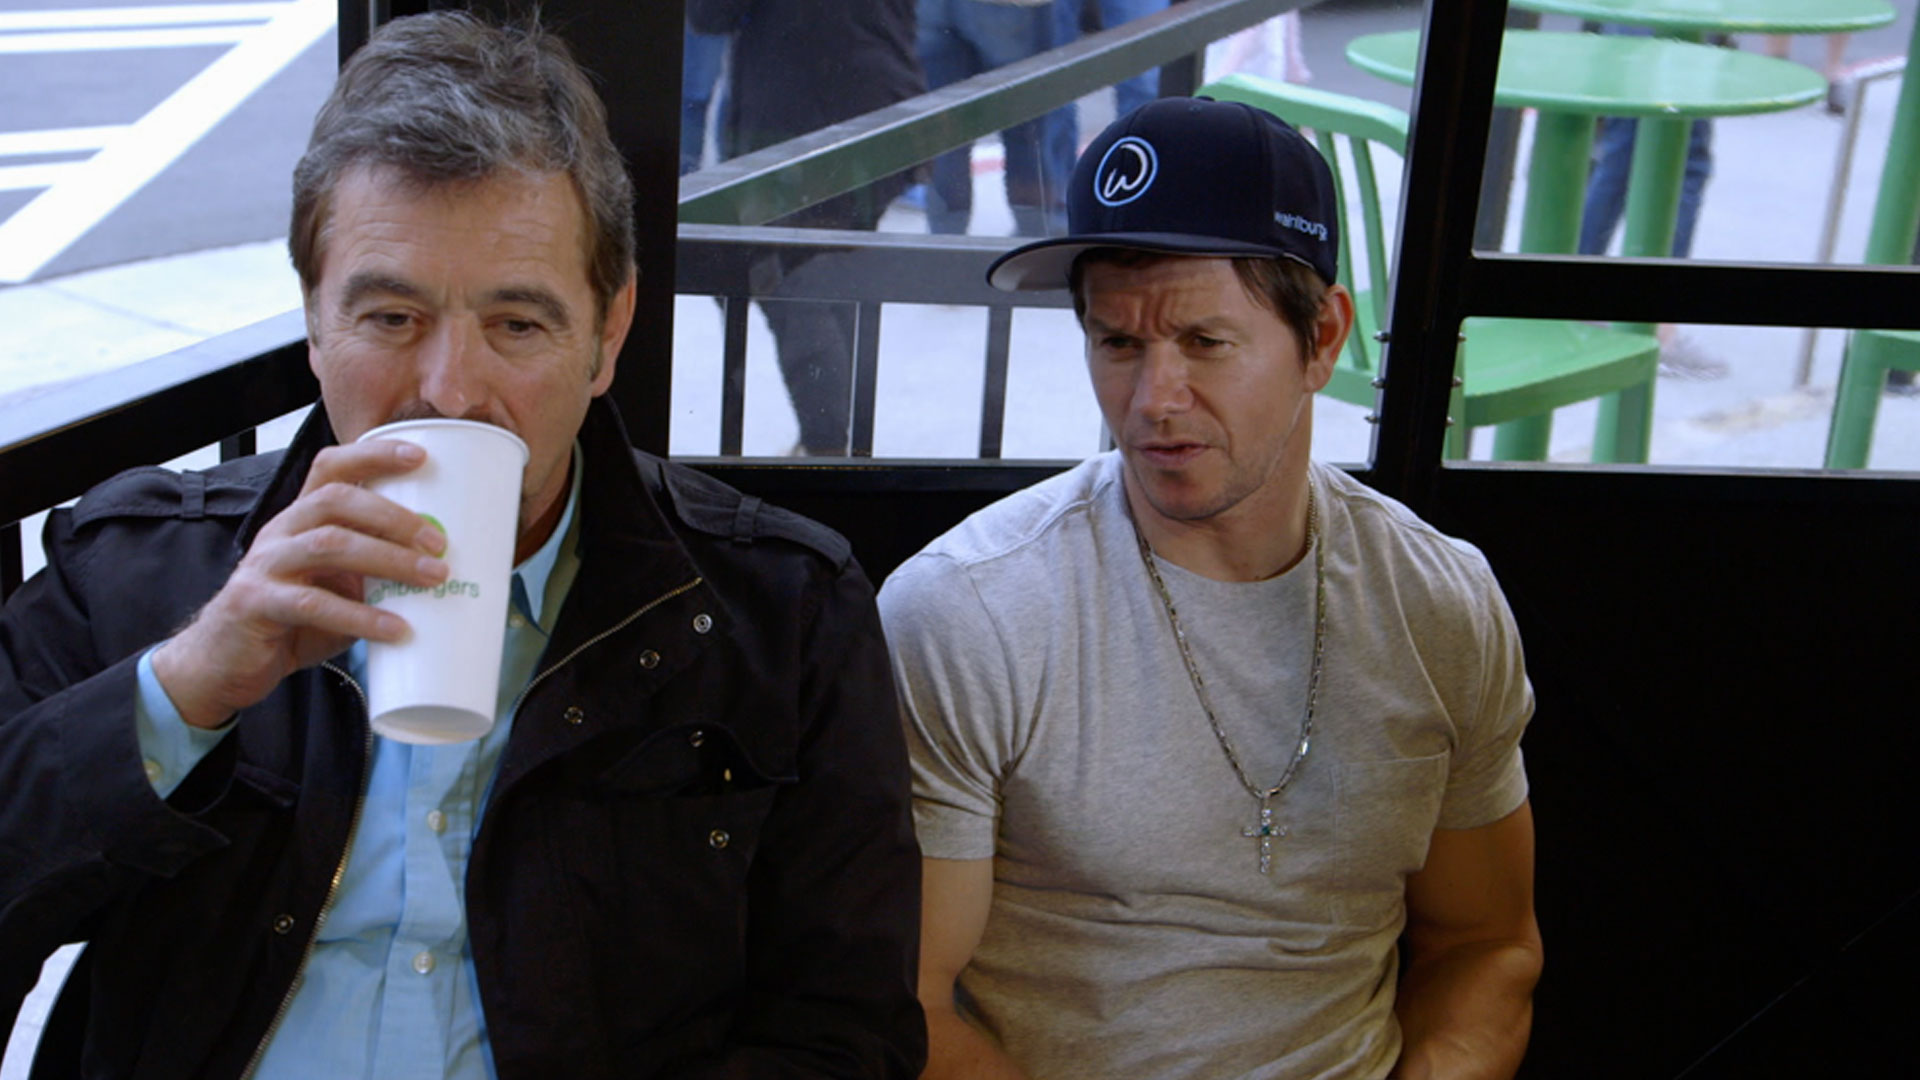 Wahlburgers Home... Away From Home (Part 1)